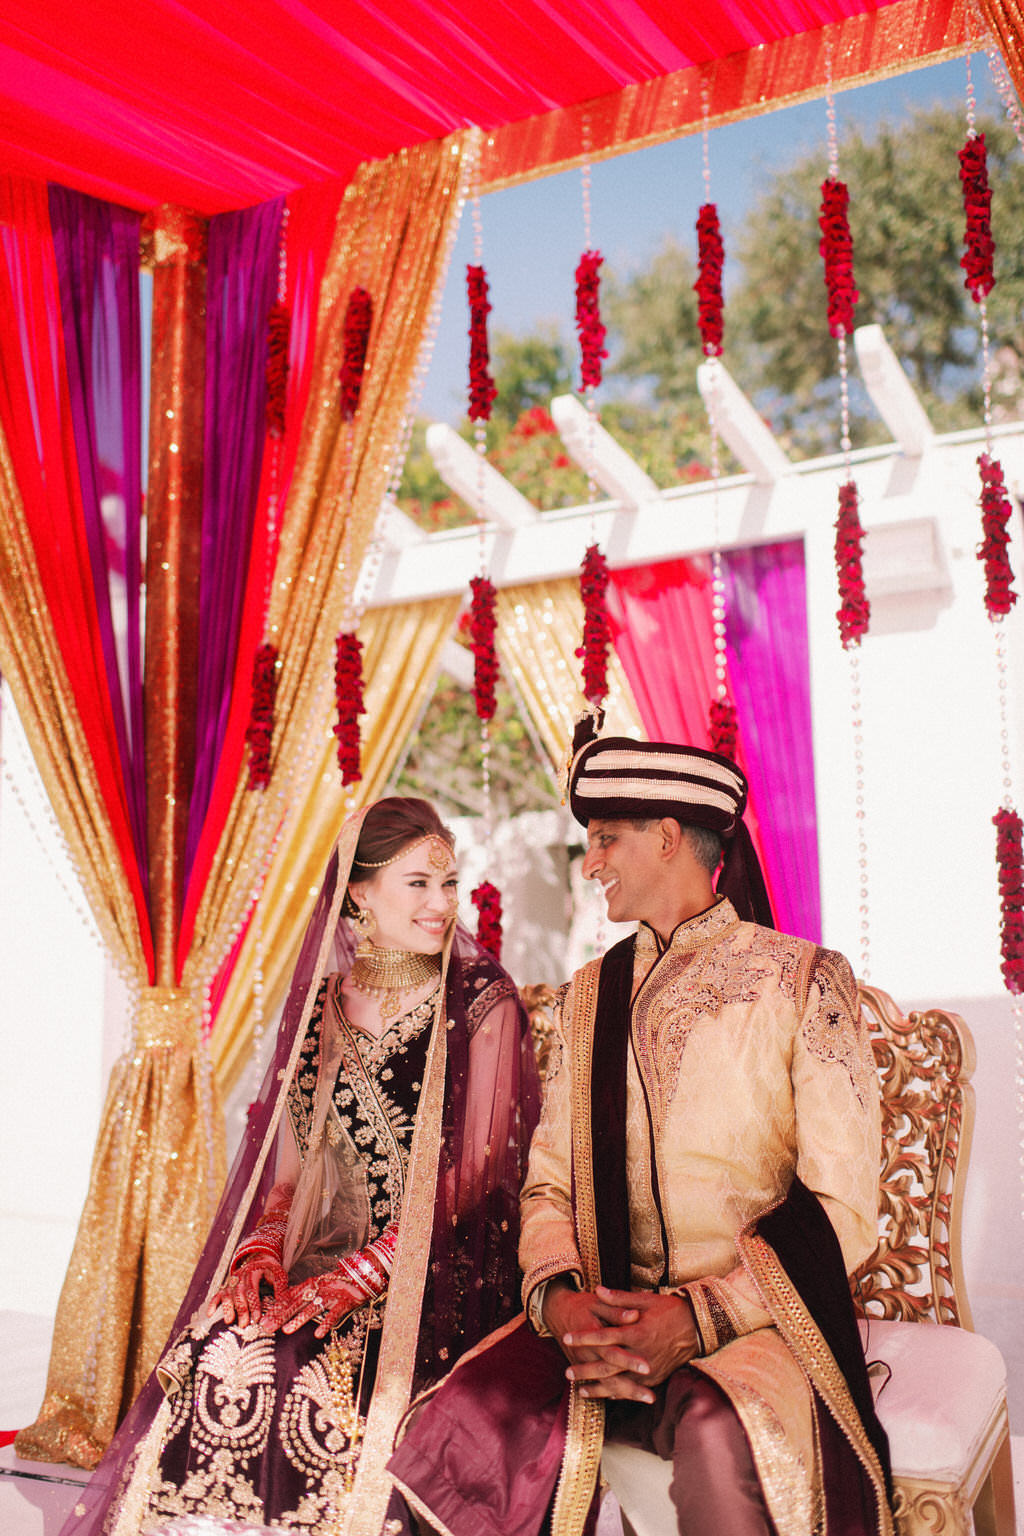 Tampa Luxurious Indian Hindu Traditional Wedding Ceremony Portrait of Bride and Groom Under Elegant Lush Red, Gold and Purple Draping, Hanging Red Floral and Crystals, Bride in Custom Purple Velvet, Gold and Black Lehenga, Groom in Black and Gold Sherwani and Turban